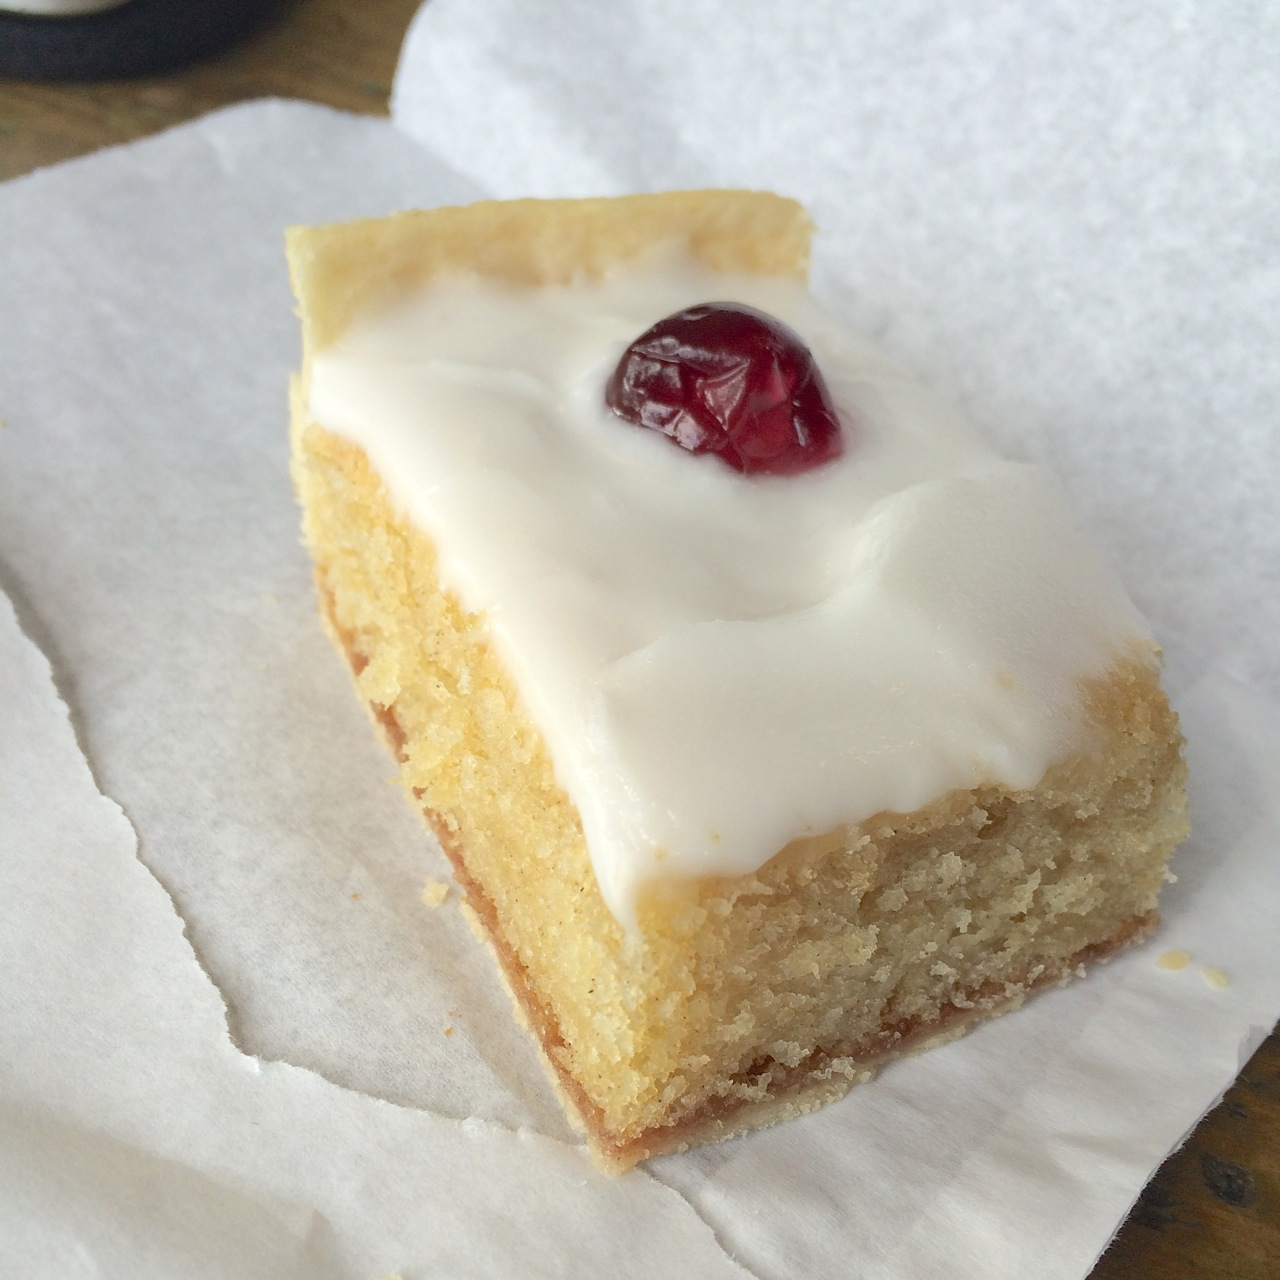 https://i0.wp.com/fatgayvegan.com/wp-content/uploads/2015/08/Vegan-Bakewell-Tart.jpg?fit=1280%2C1280